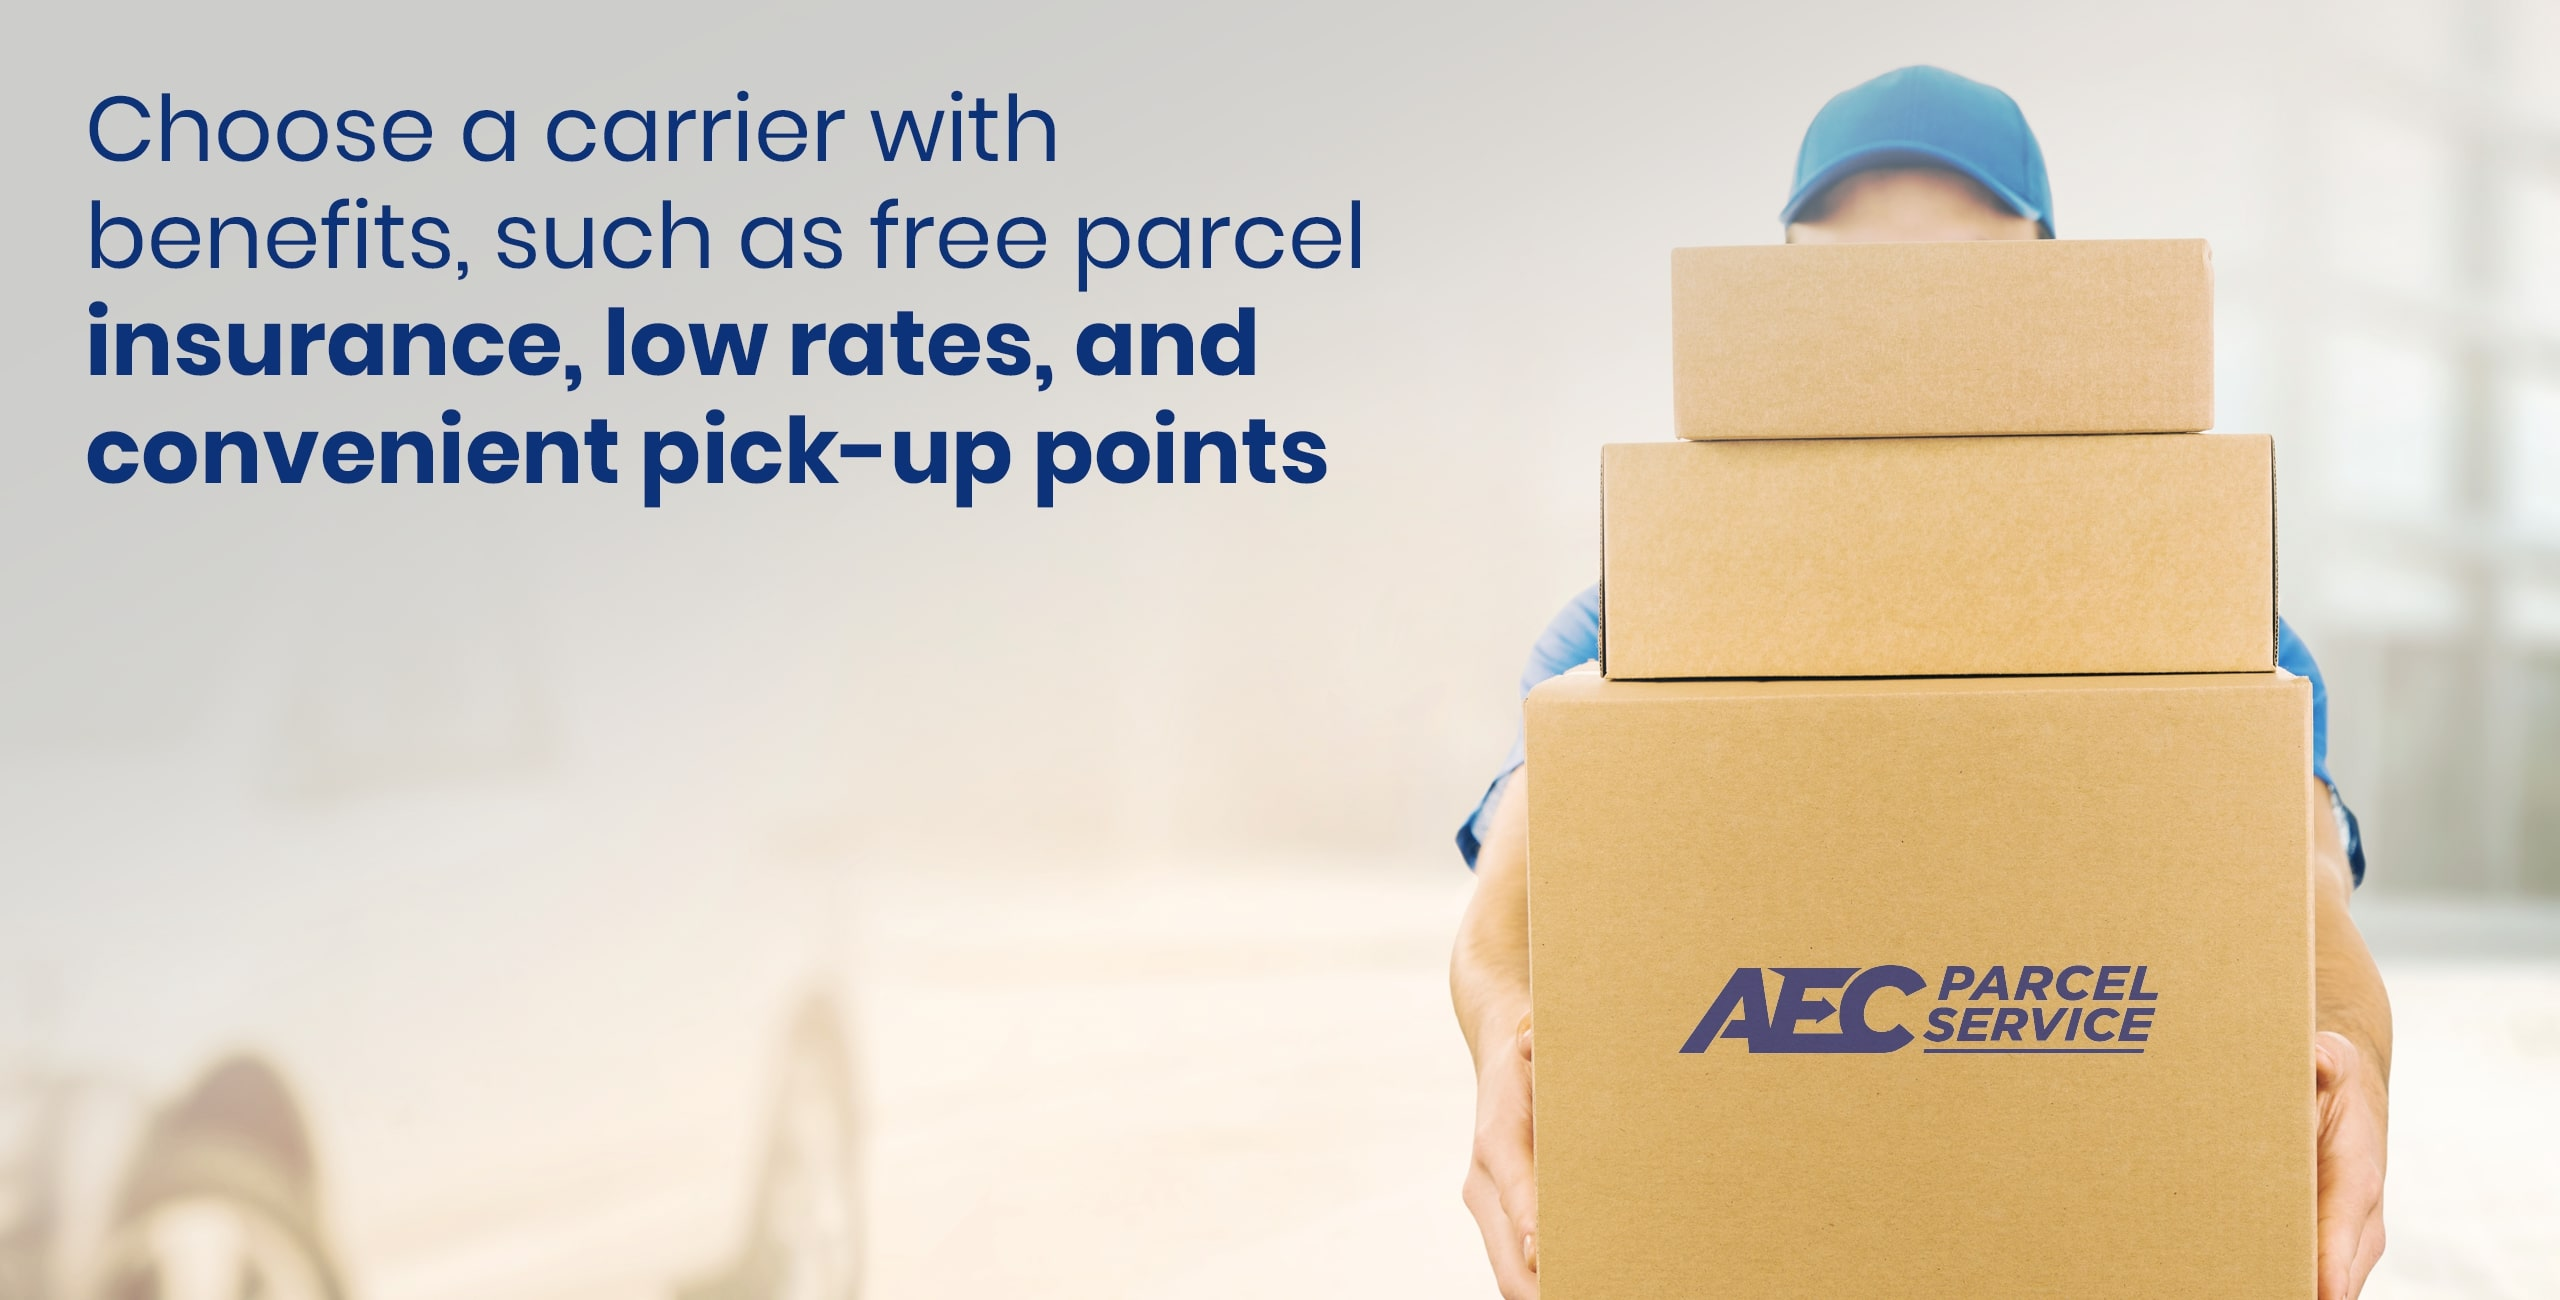 Package shipping company with benefits